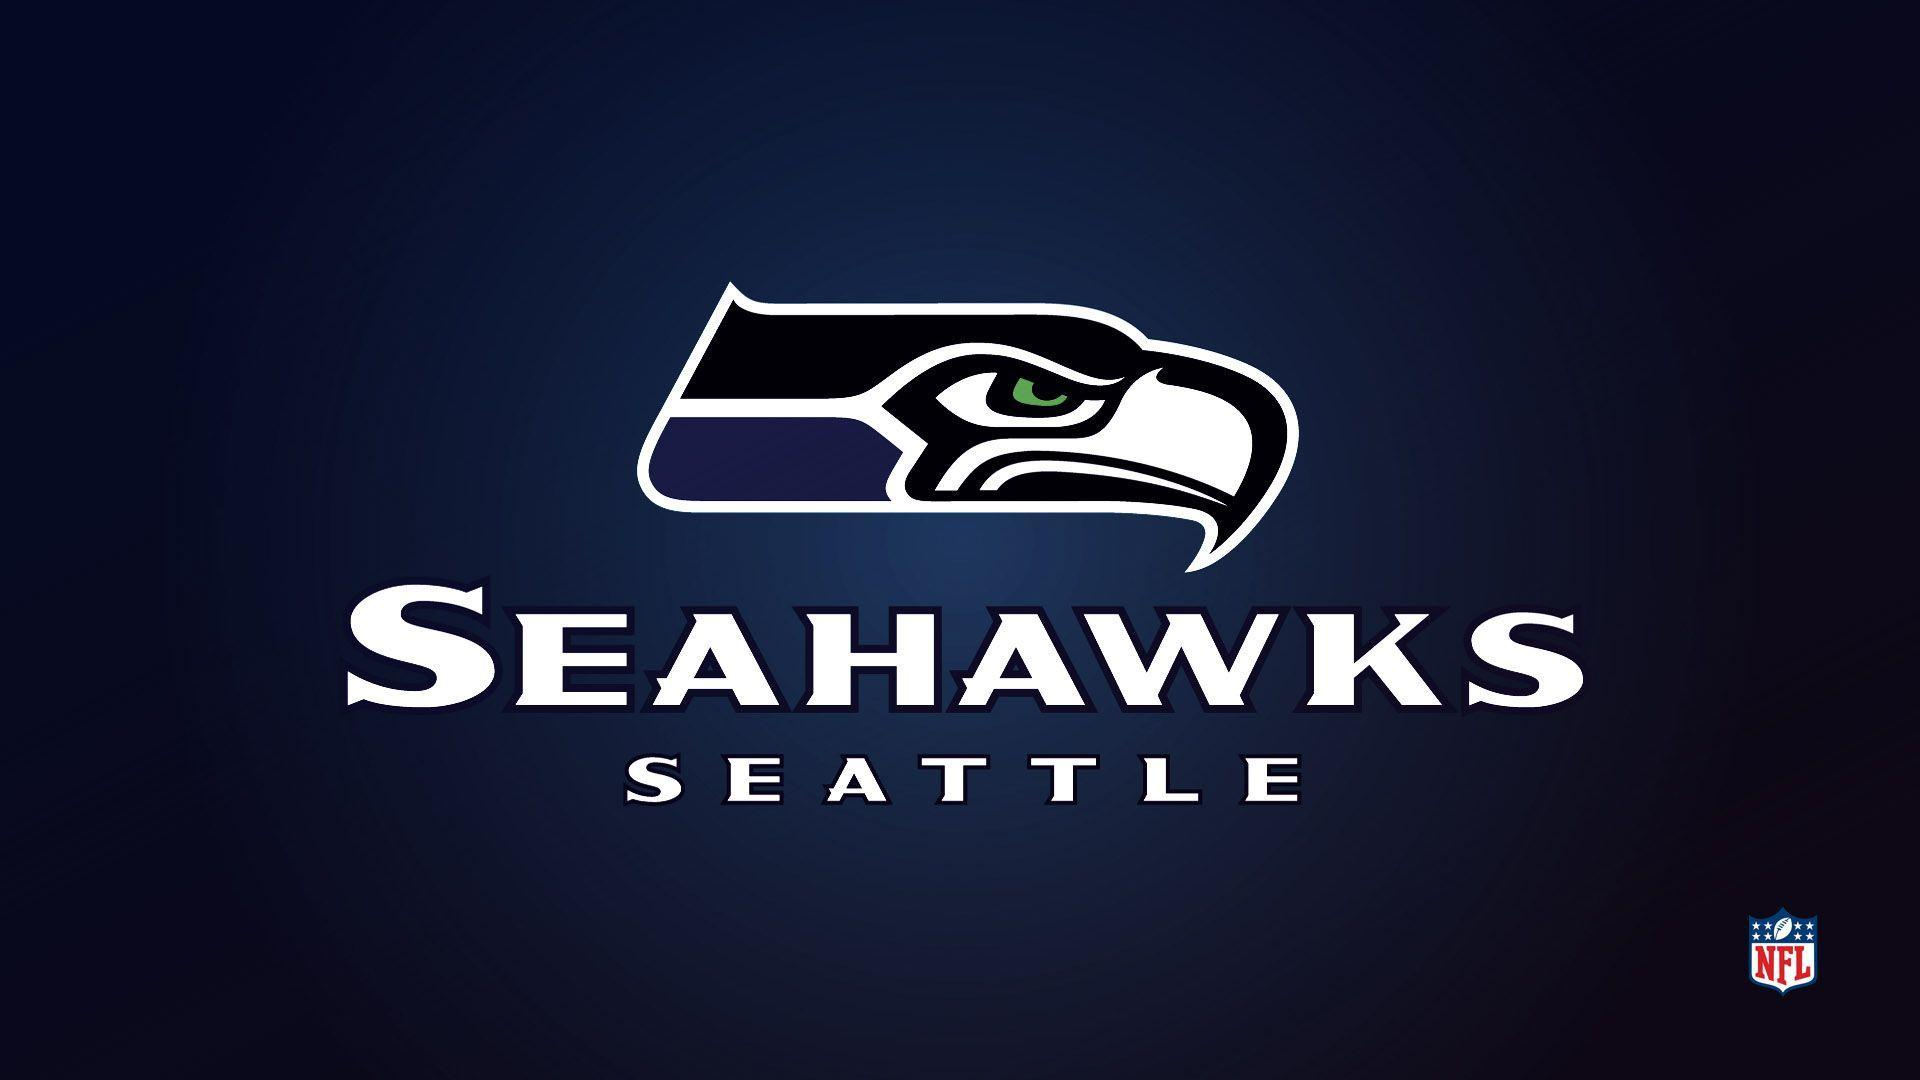 Seattle Seahawks Wallpapers Top Free Seattle Seahawks